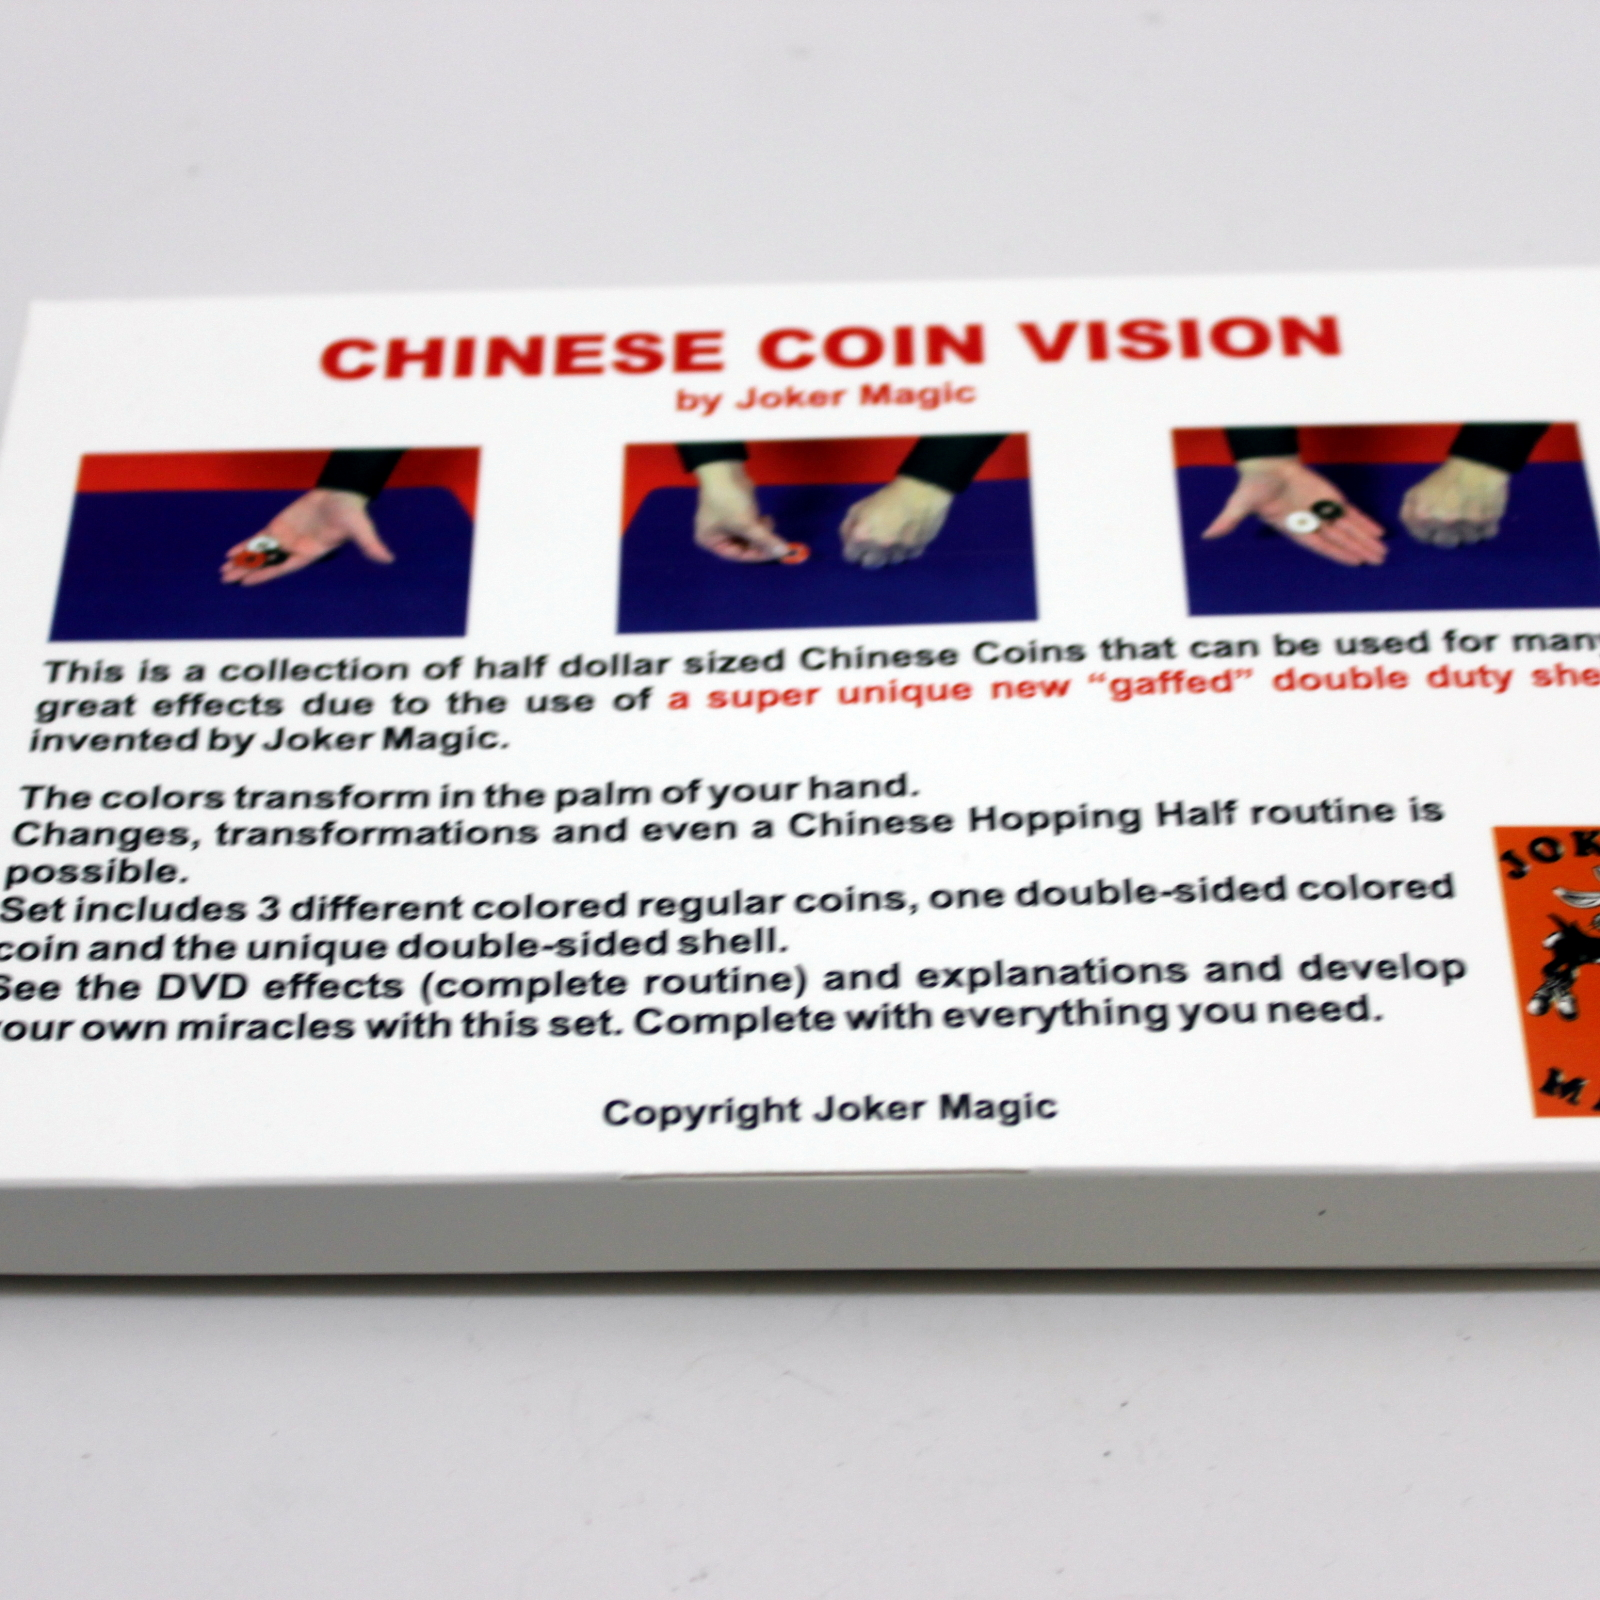 Chinese Coin Vision by Joker Magic